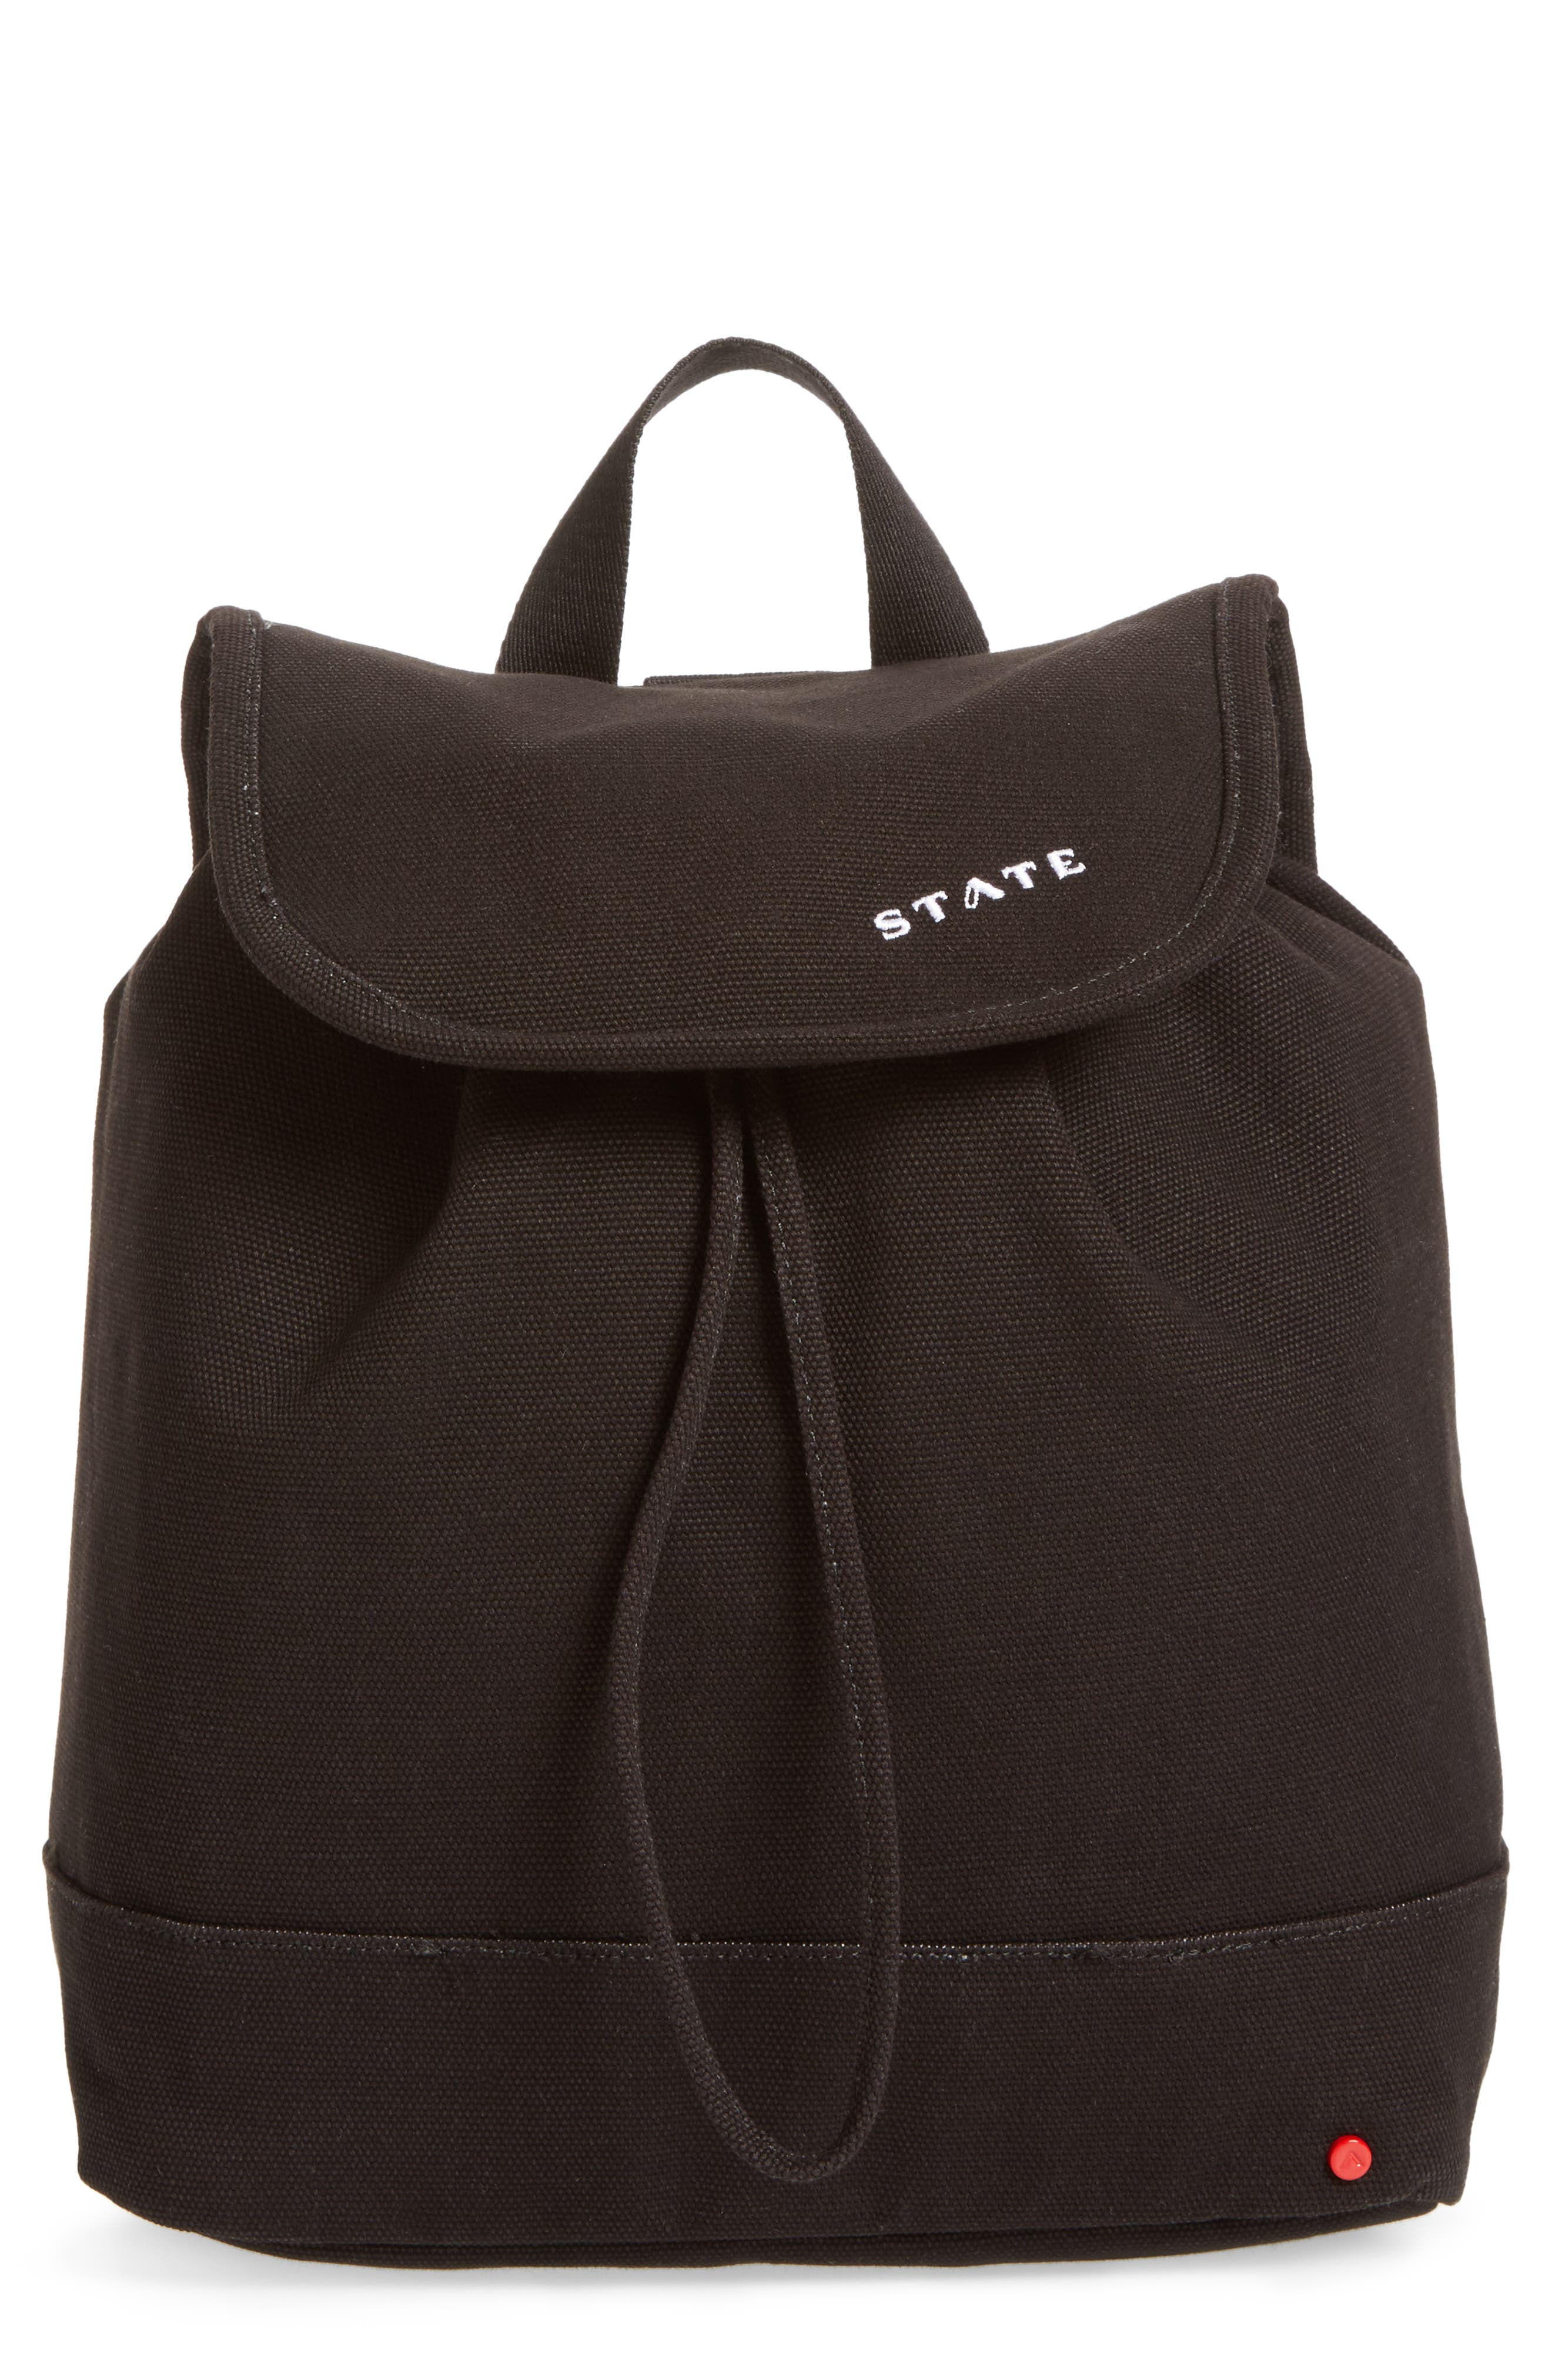 Main Image - STATE Bags Park Slope Hattie Canvas Backpack